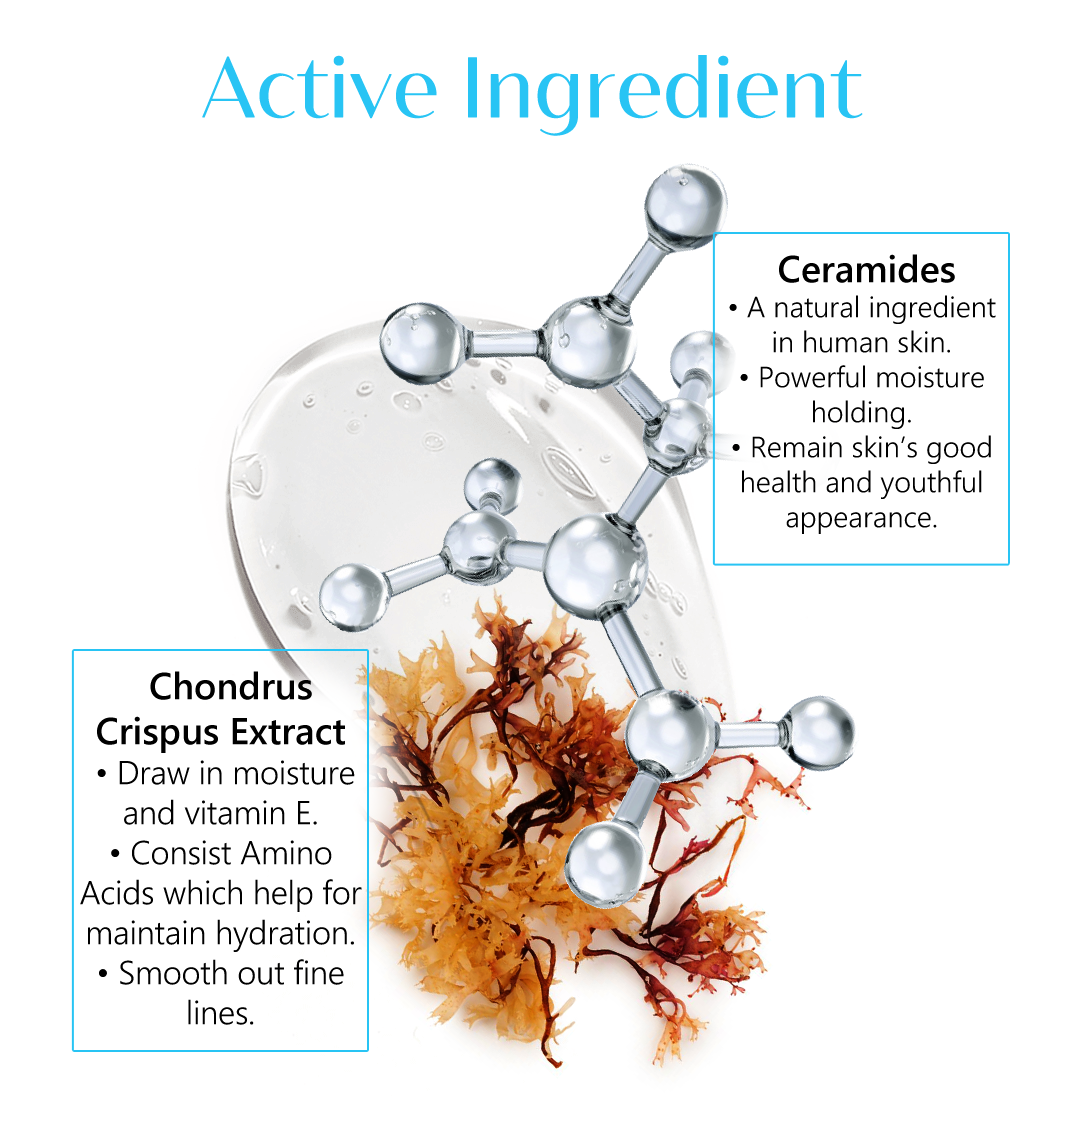 Hydra-Boost-Ceramides-First-Essence-Infographic_1080-3.png